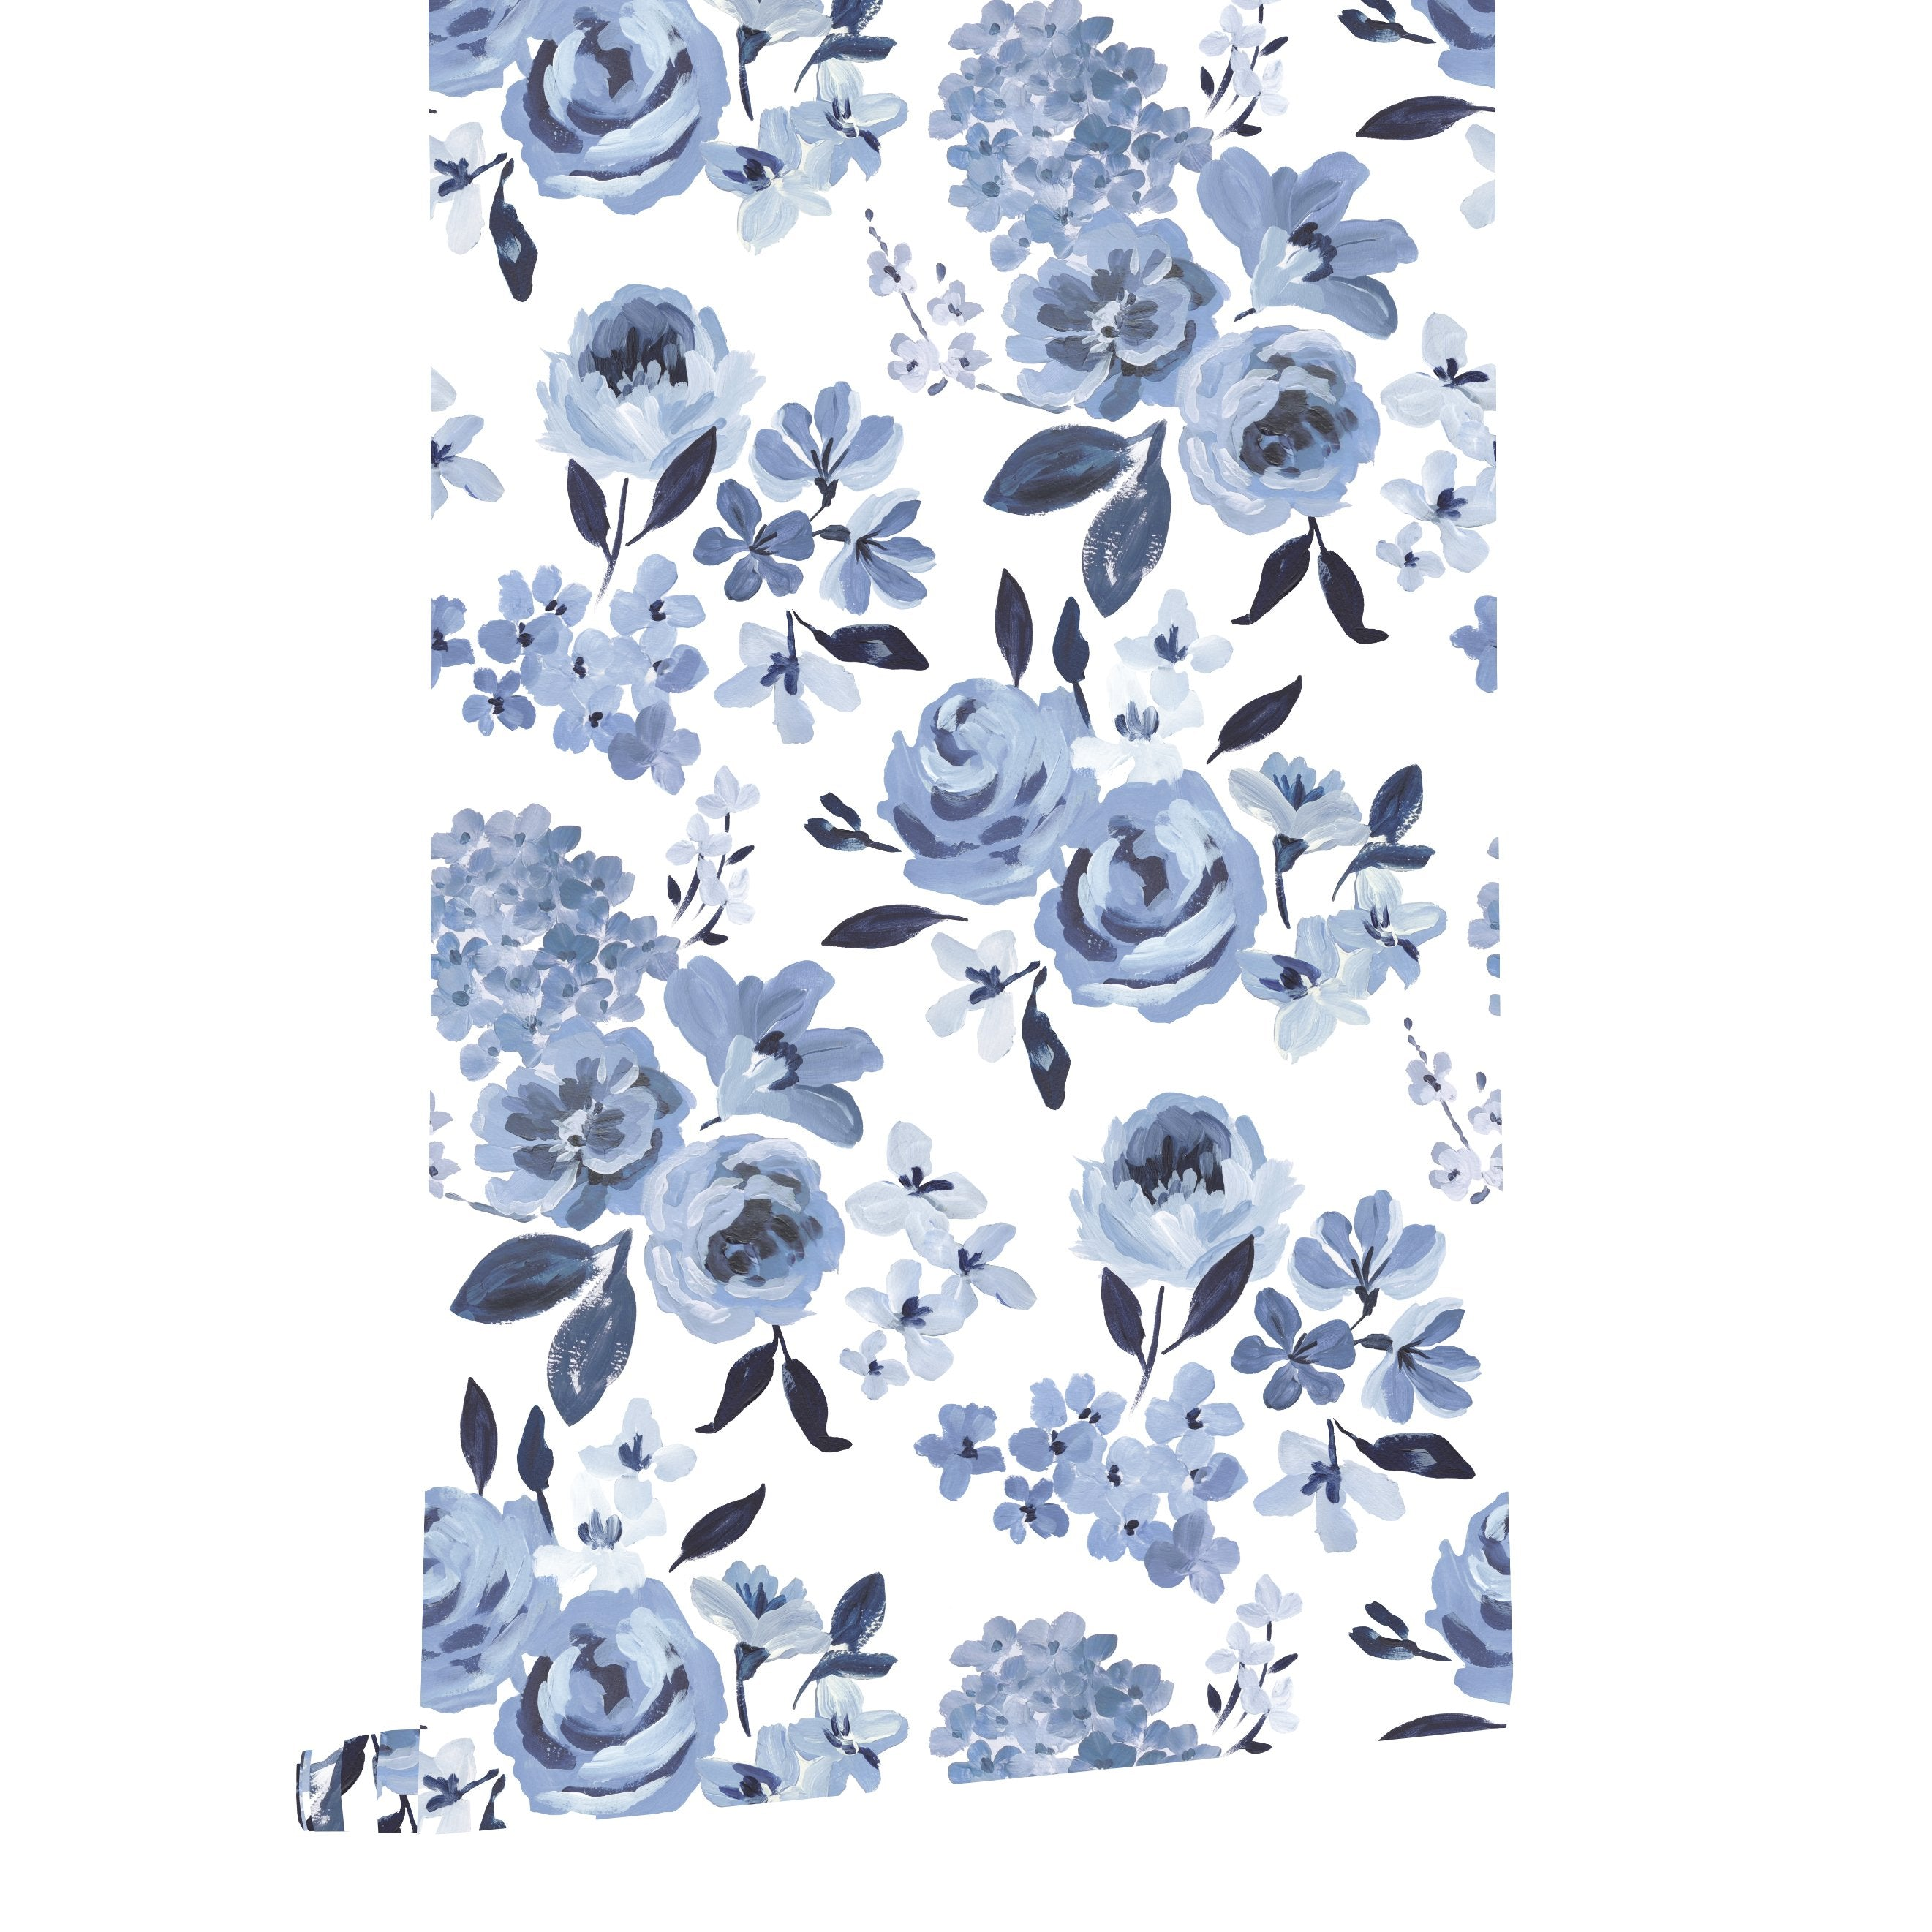 Highland Floral Wallpaper Caitlin Wilson